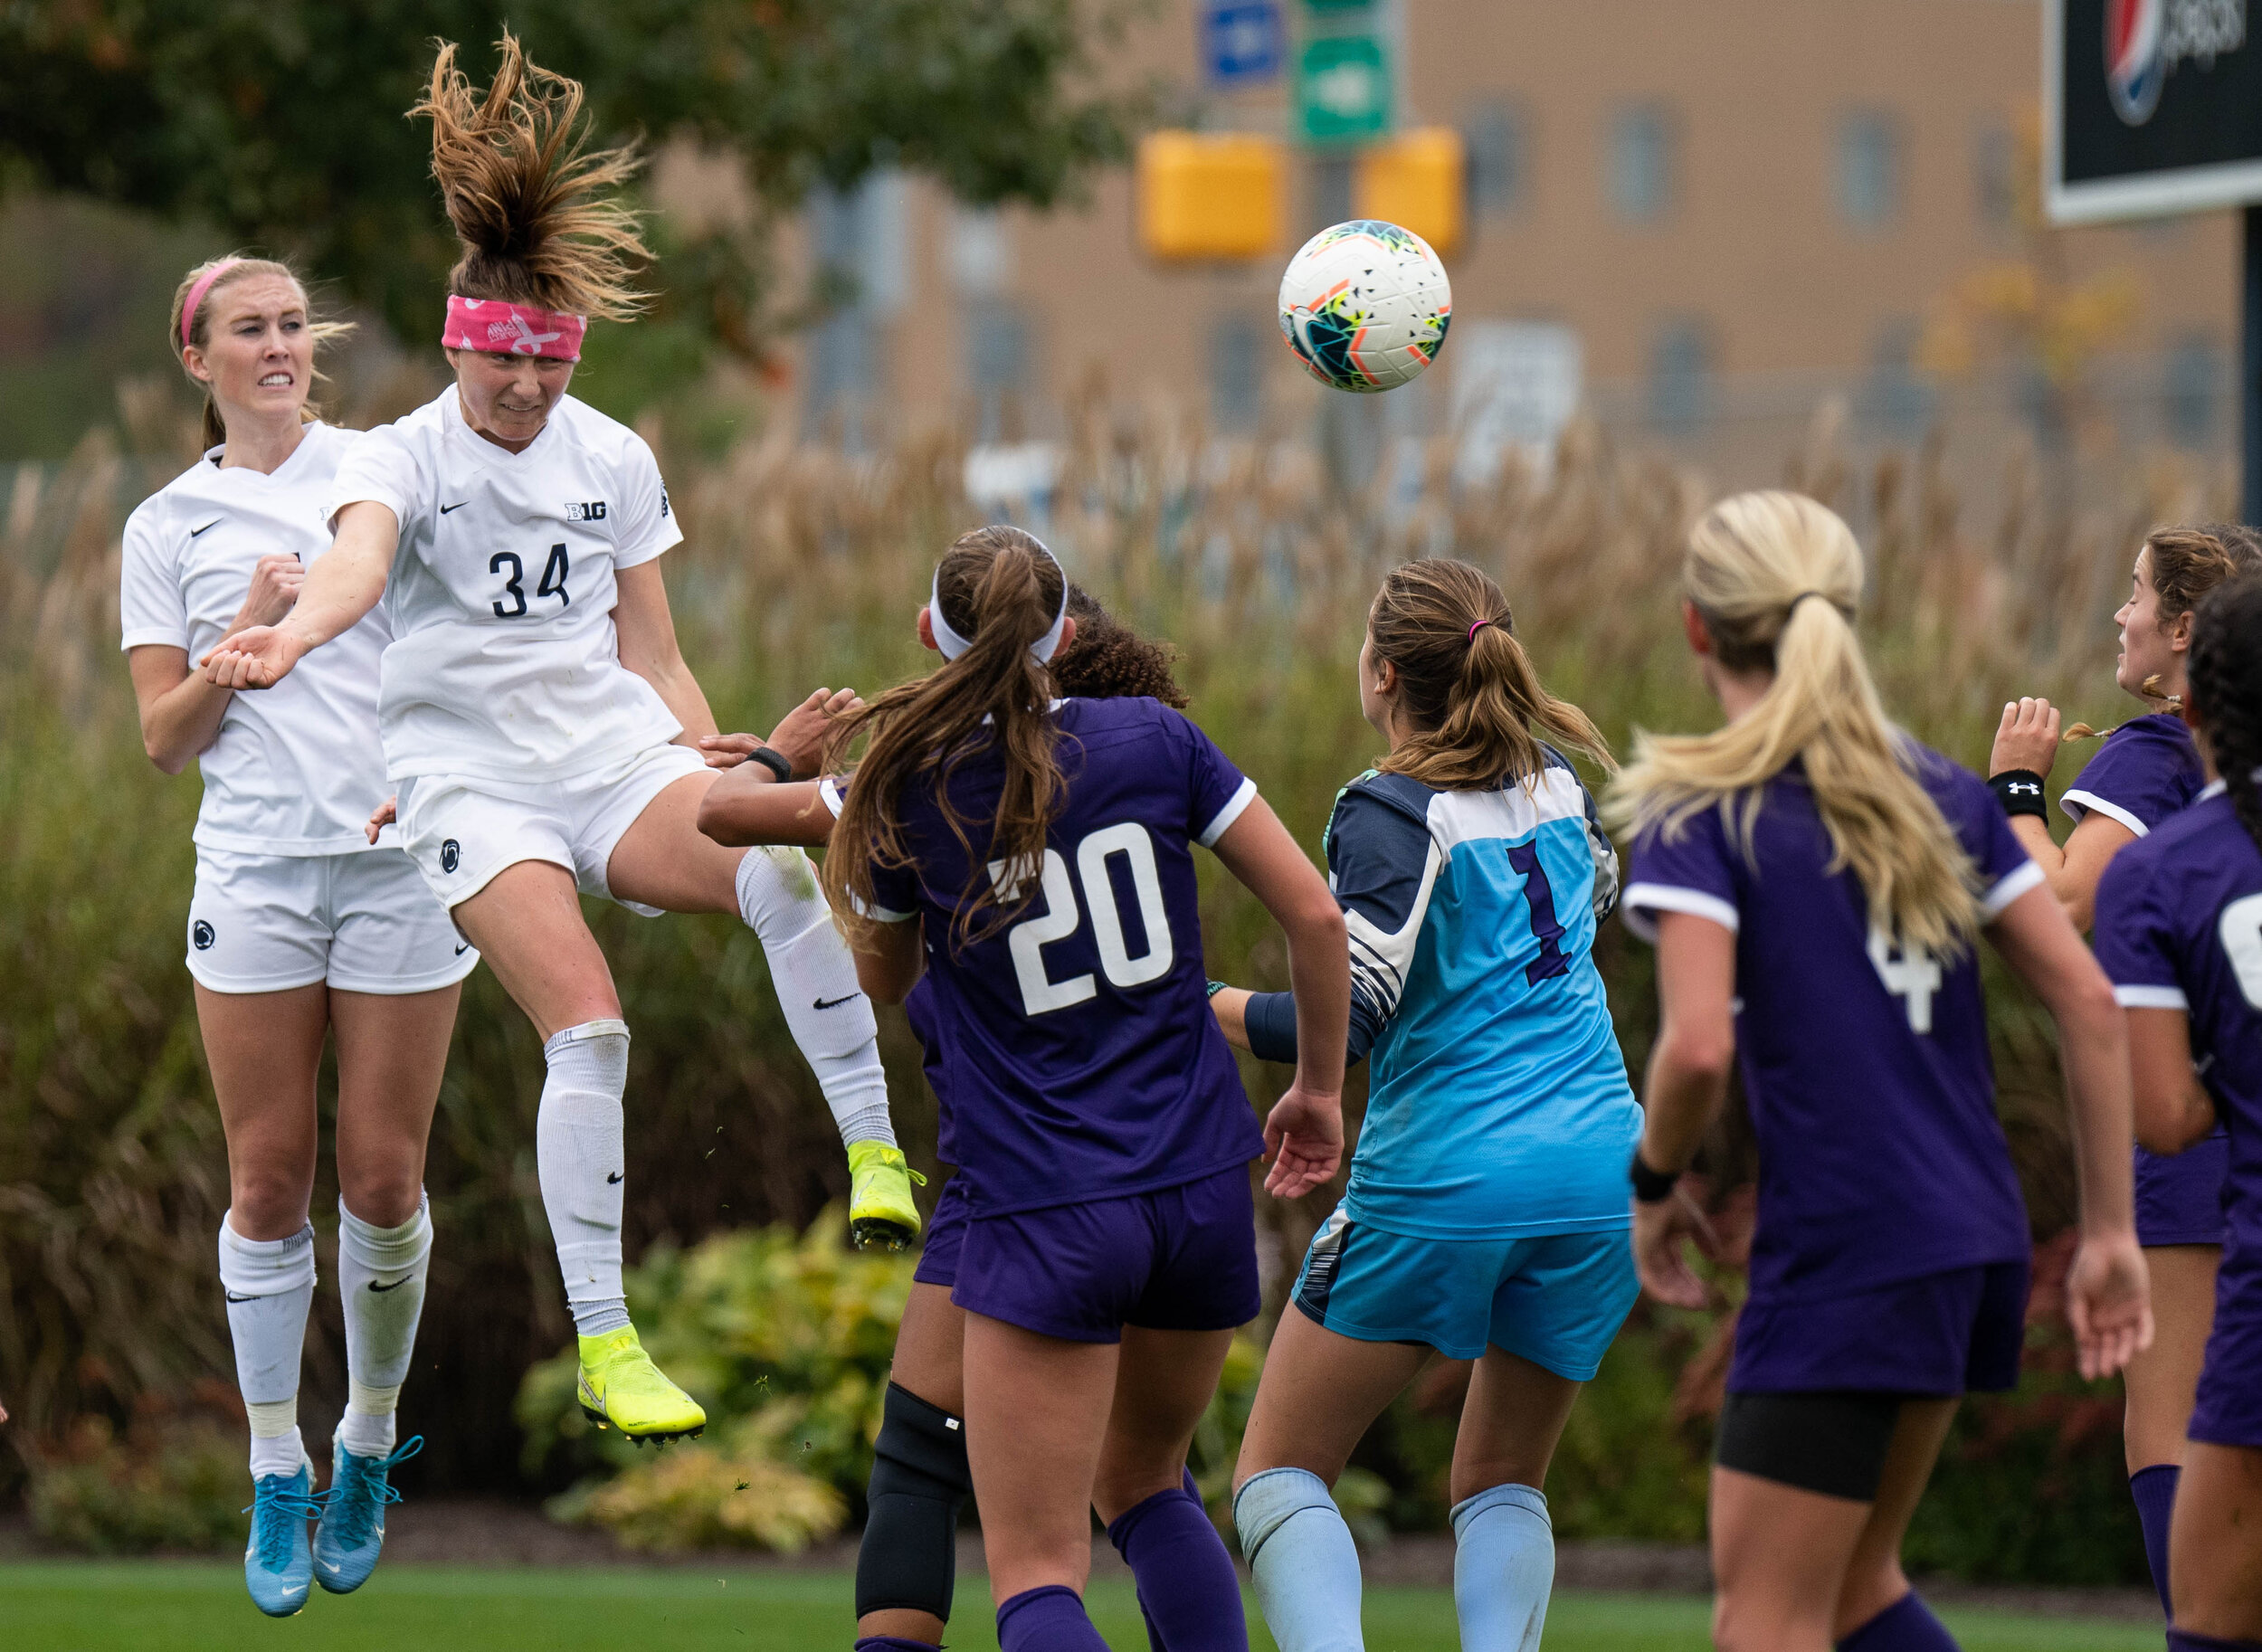 Midfielder, Ally Schlegel (34) heads the ball and scores a goal during the match against Northwestern on Sunday, Oct. 20, 2019 at Jeffrey Field. | Photo by: Noah Riffe